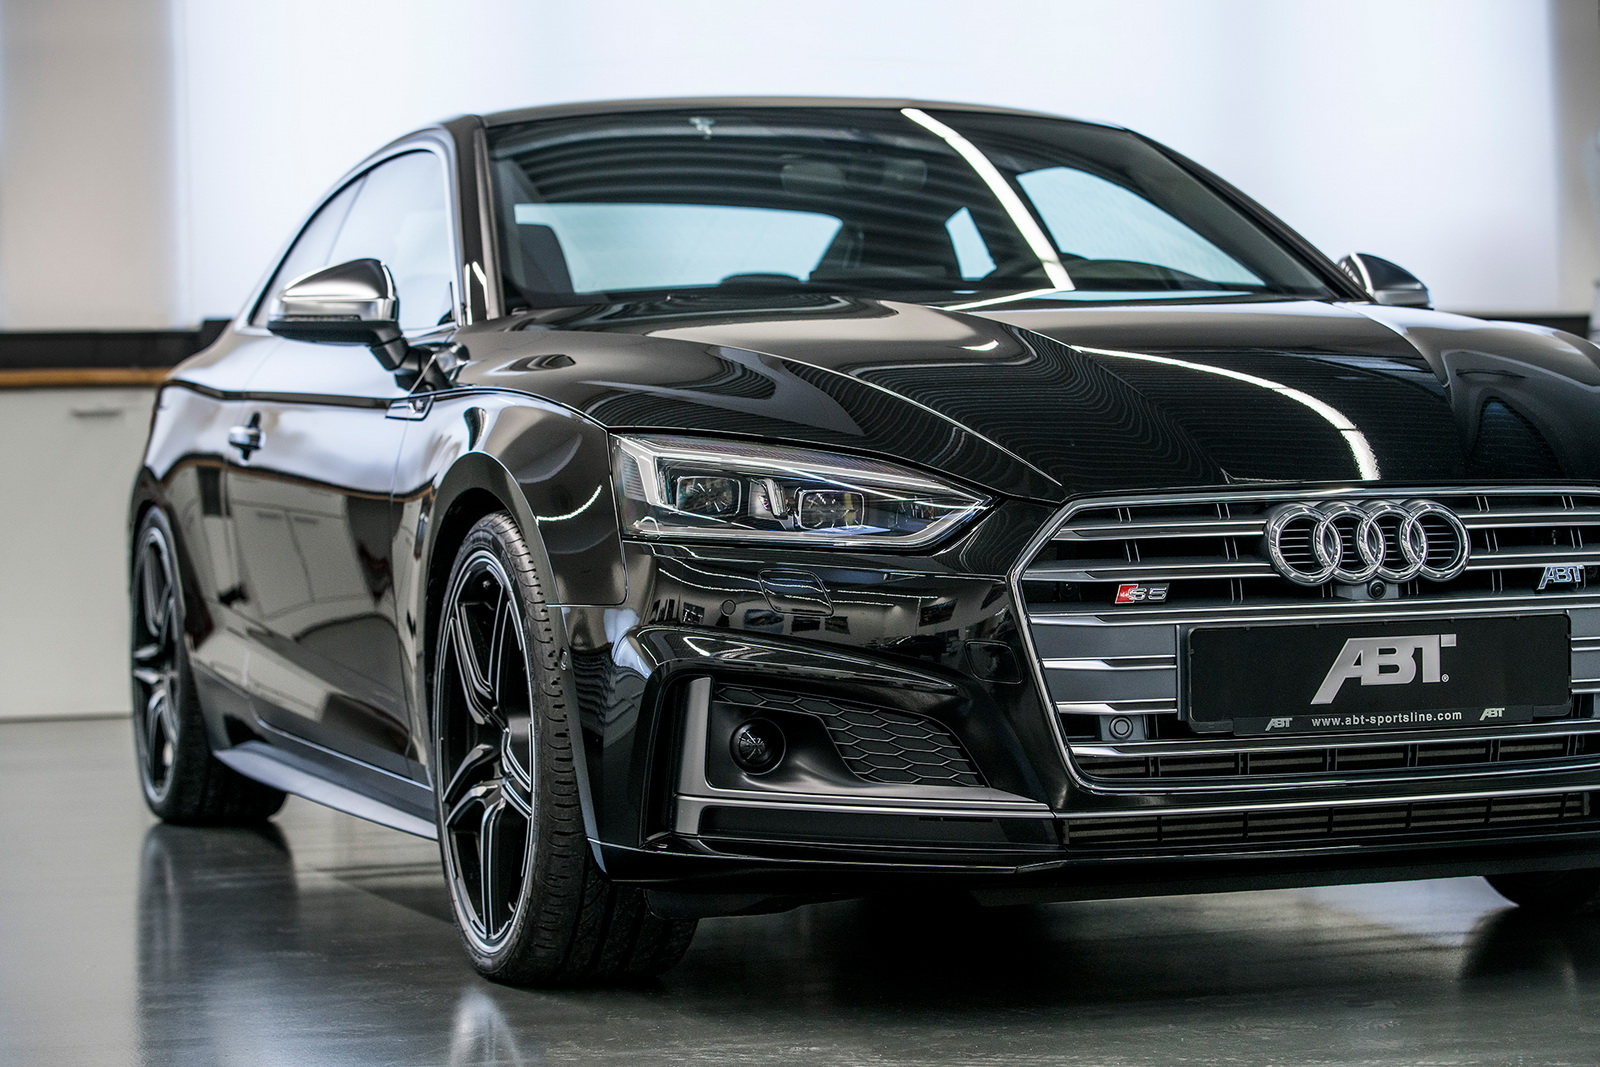 ABT S5 Coupe by ABT (4)